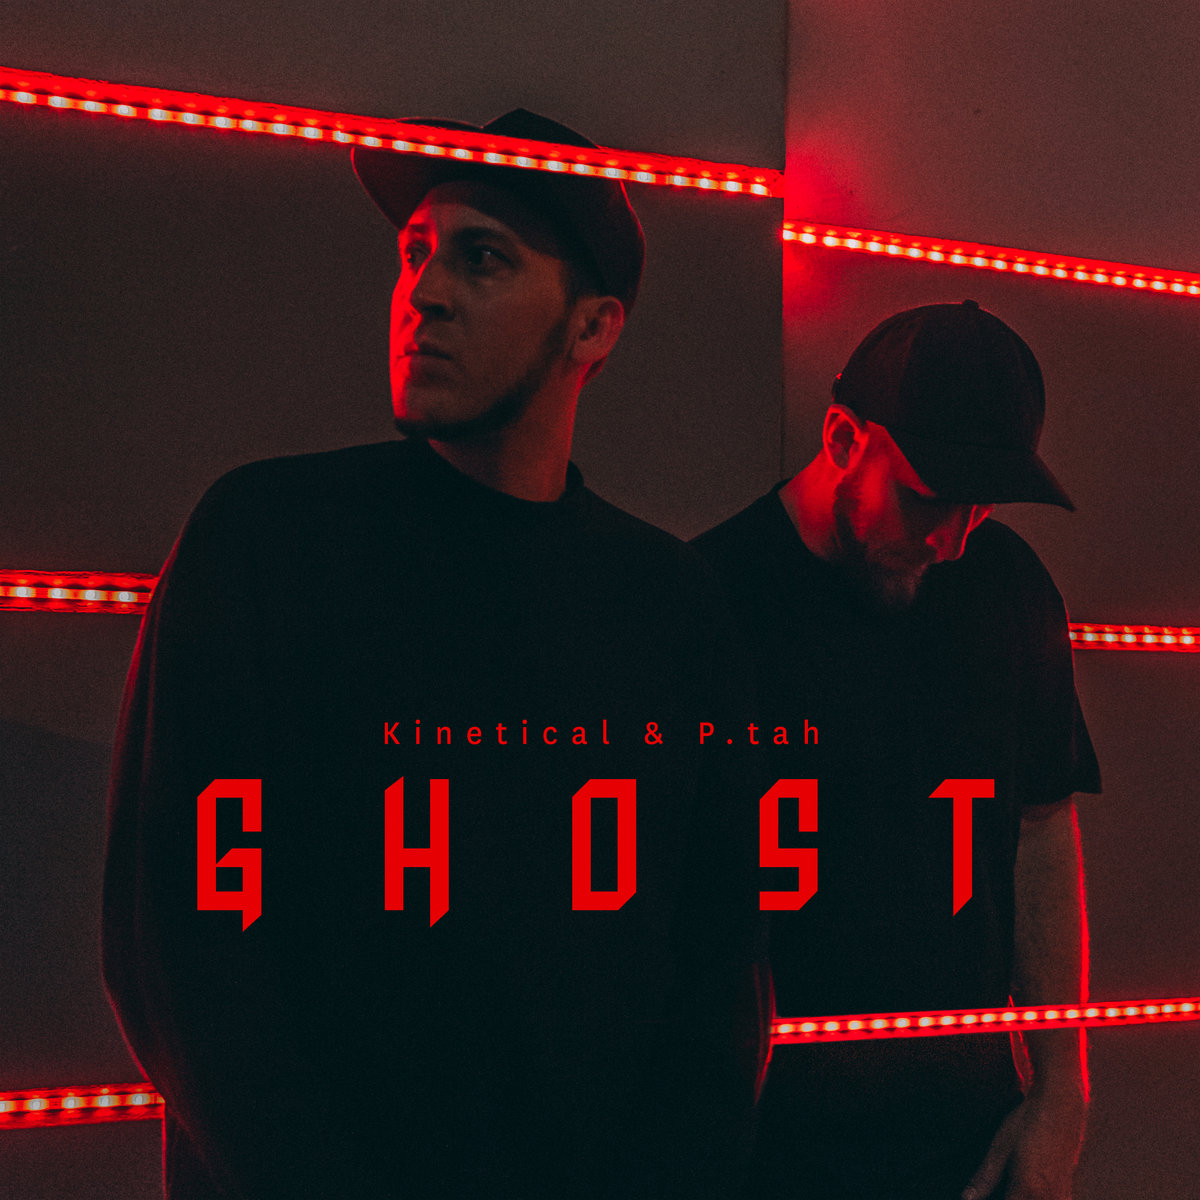 ghost ep p.tah kinetical duzz down san